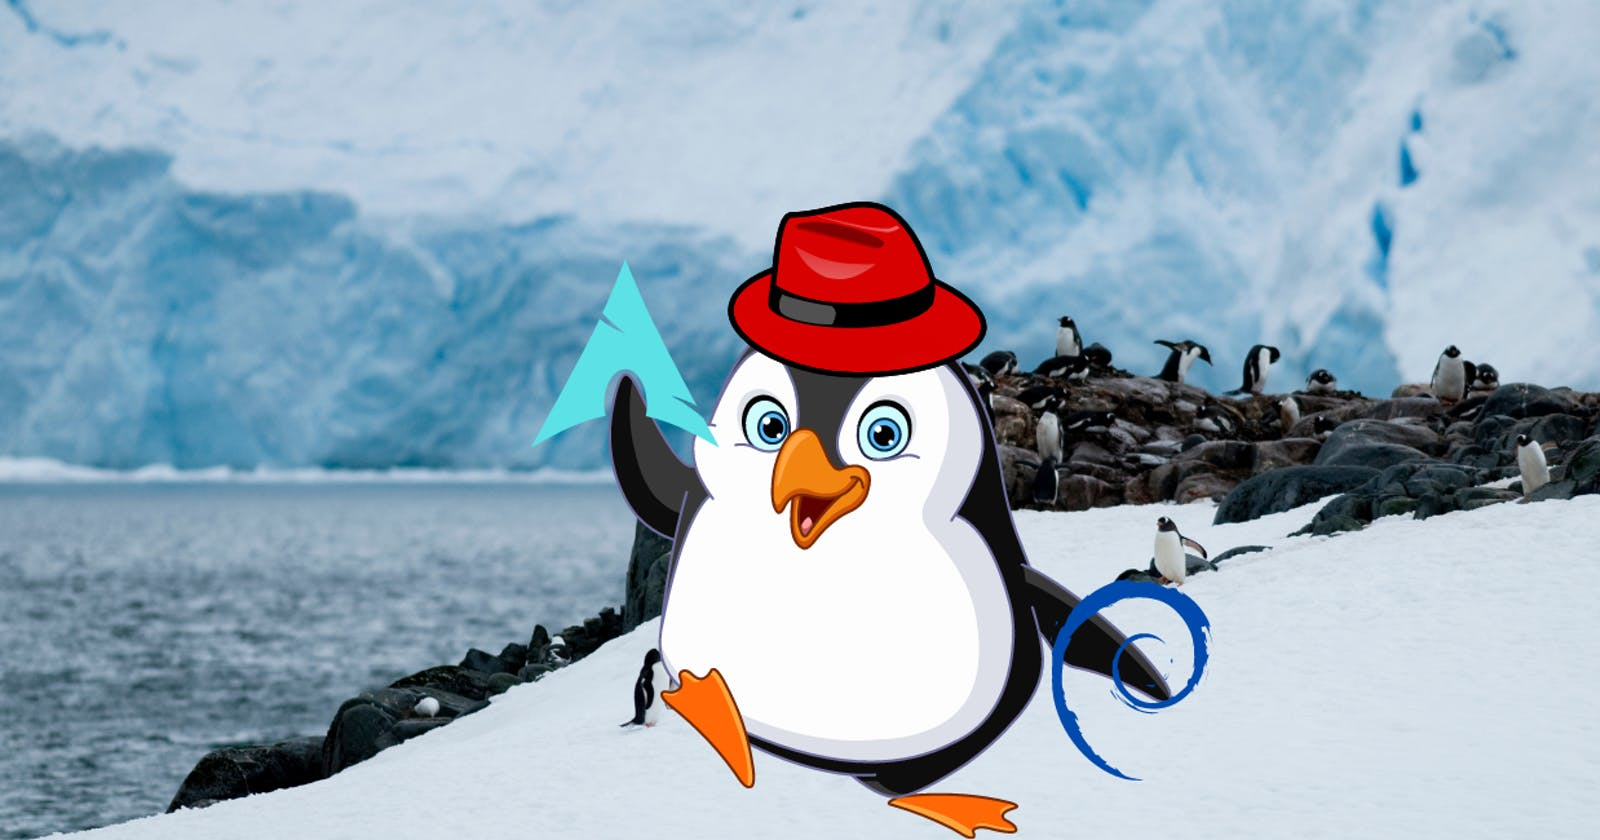 Is Linux the best operating system to choose?